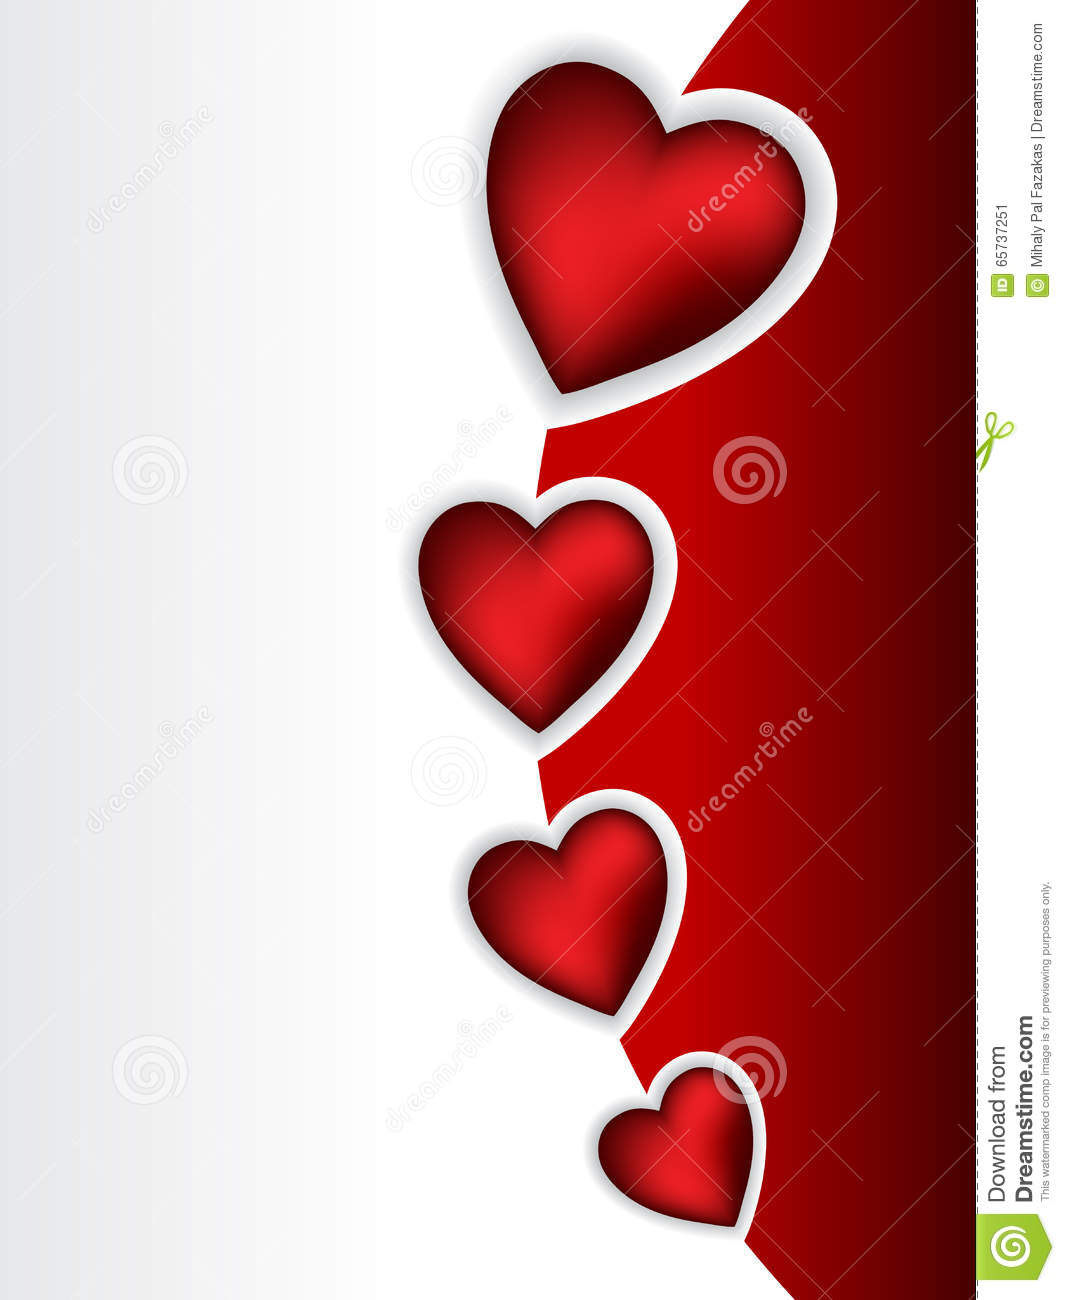 Cool Valentine Greeting With 3d Heart Shapes Stock Vector